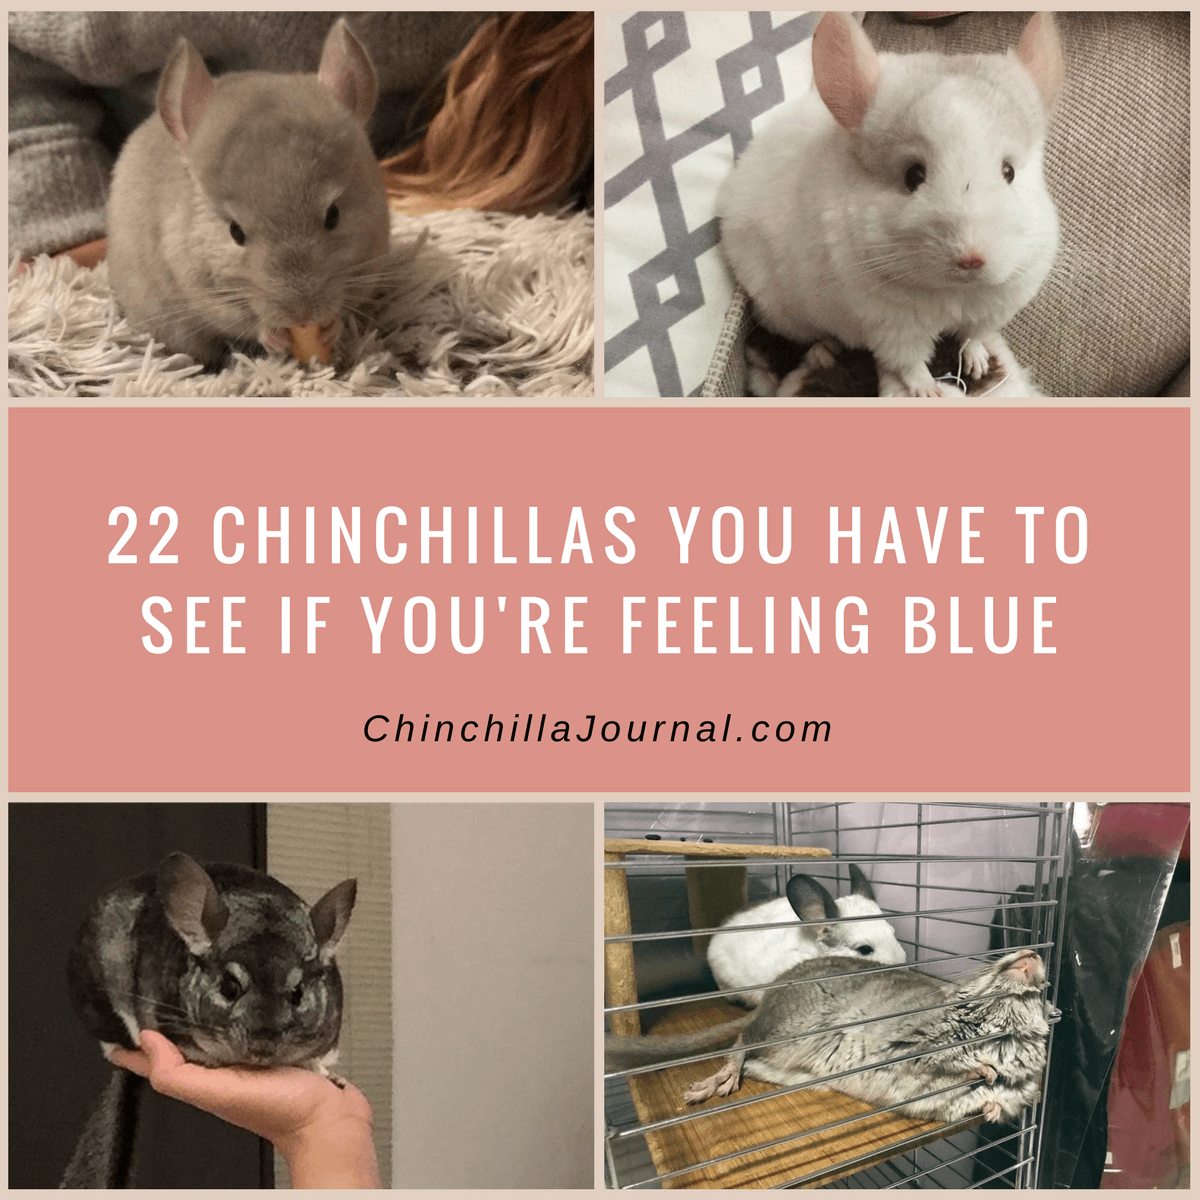 22 Chinchillas You Have To See If You're Feeling Blue